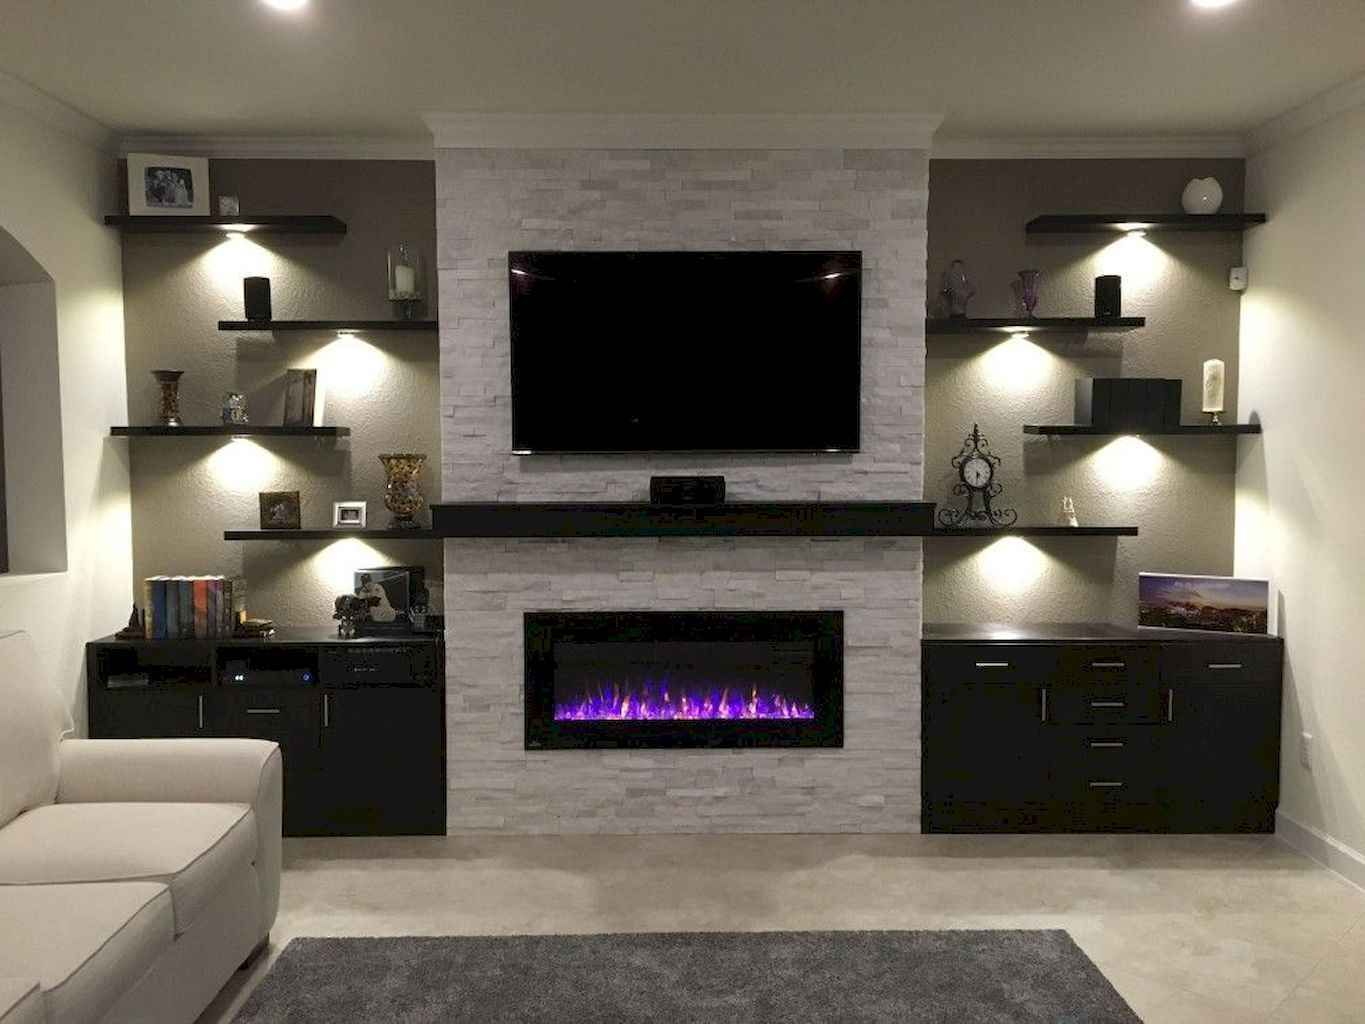 Tv Fire Wall New 50 Diy Floating Shelves for Living Room Decorating